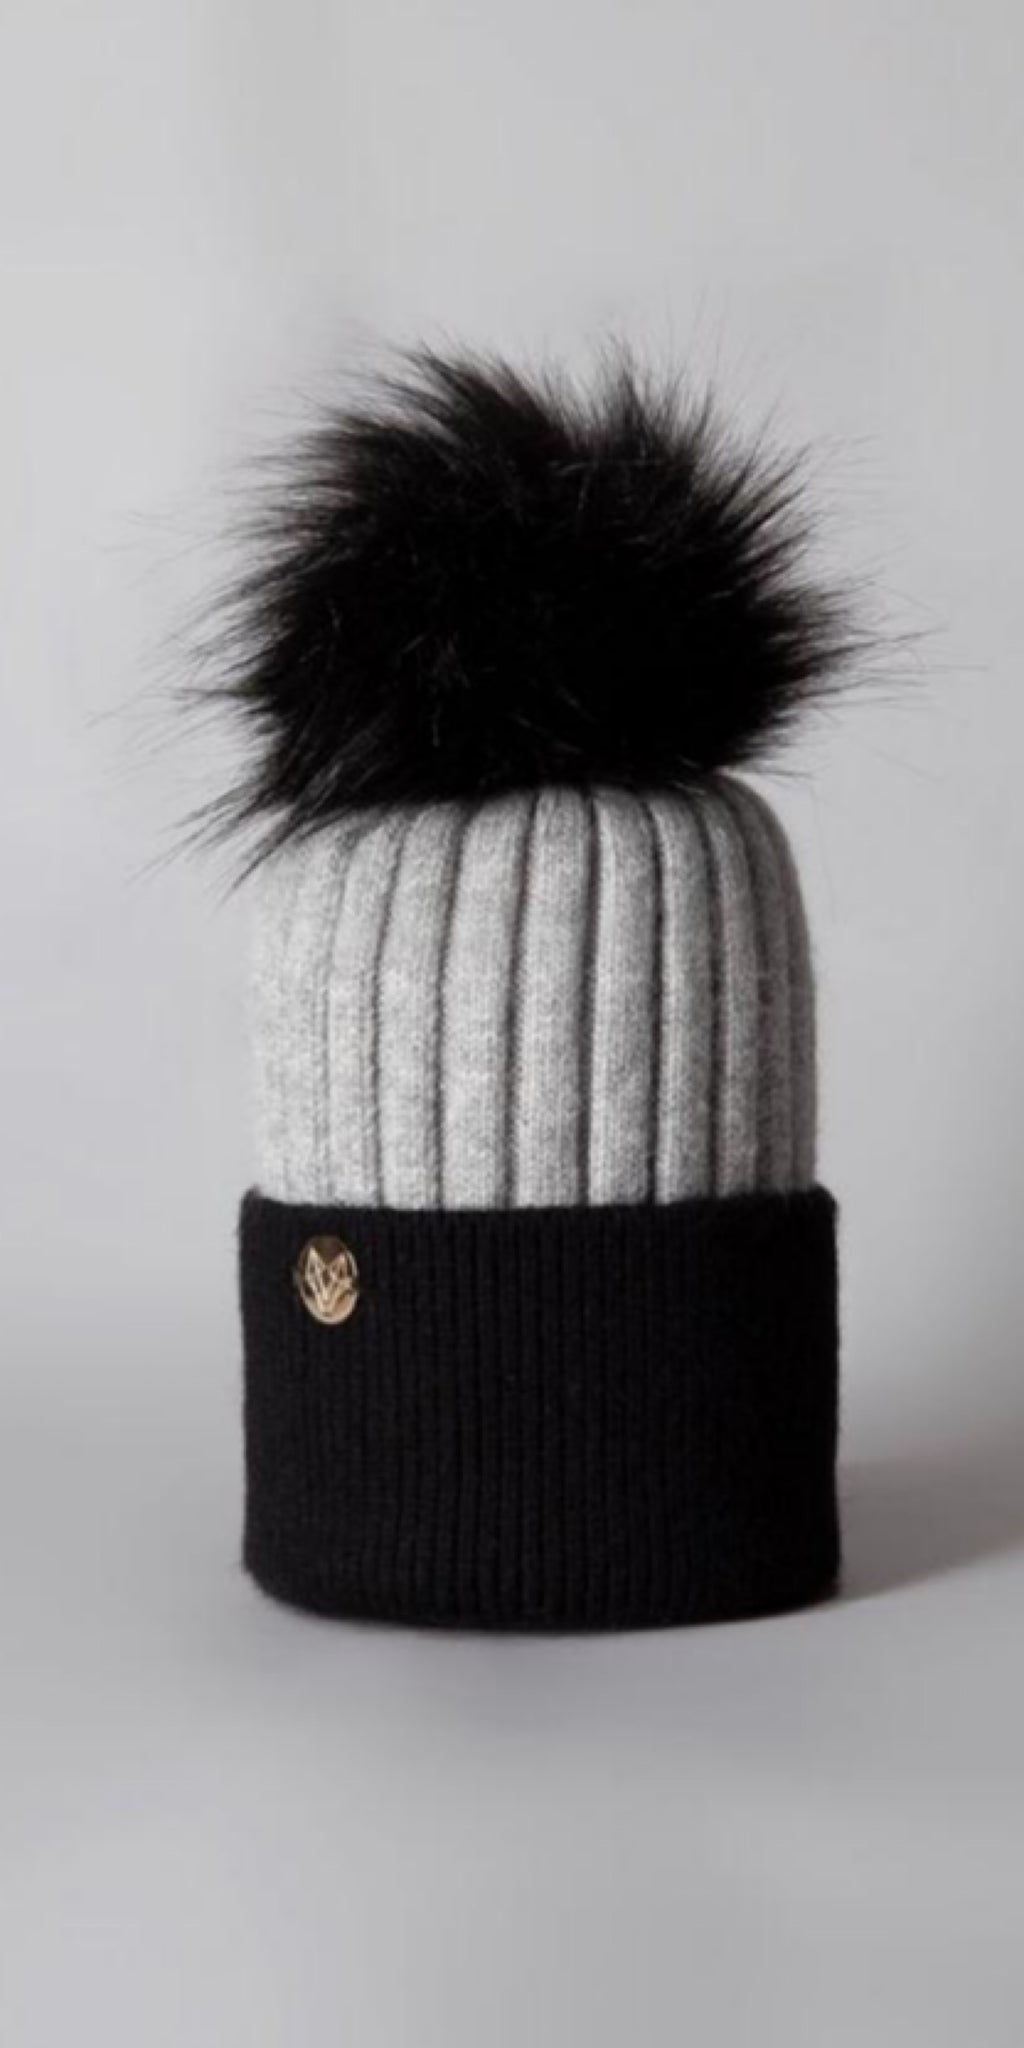 LUXY Faux Fur Cable Hat in Black & Grey